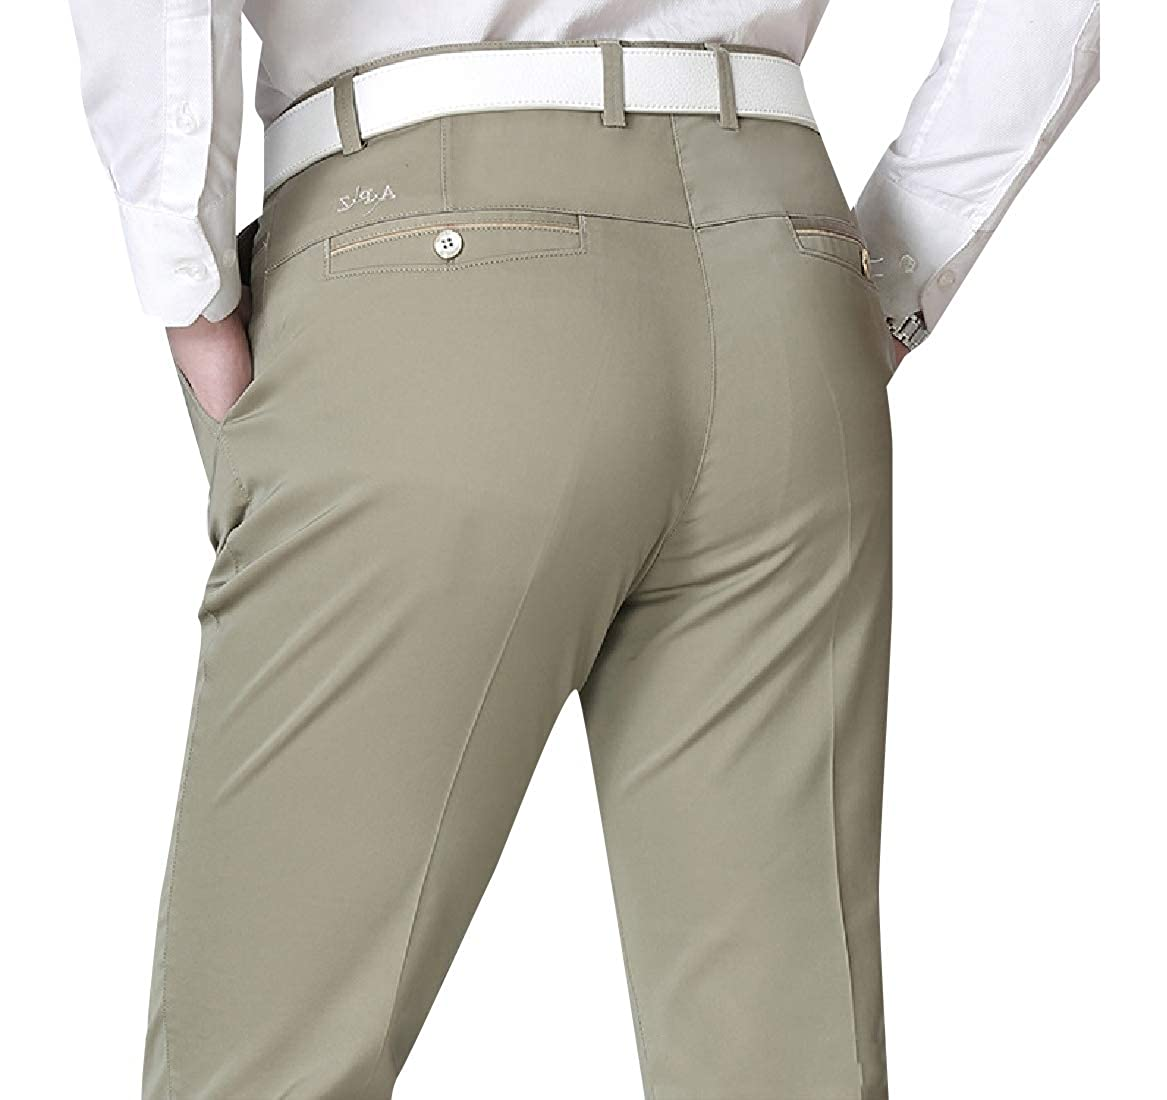 YUNY Mens Hi-Waist Baggy Straight Oversize Jogger Pant Trousers 2 3XL